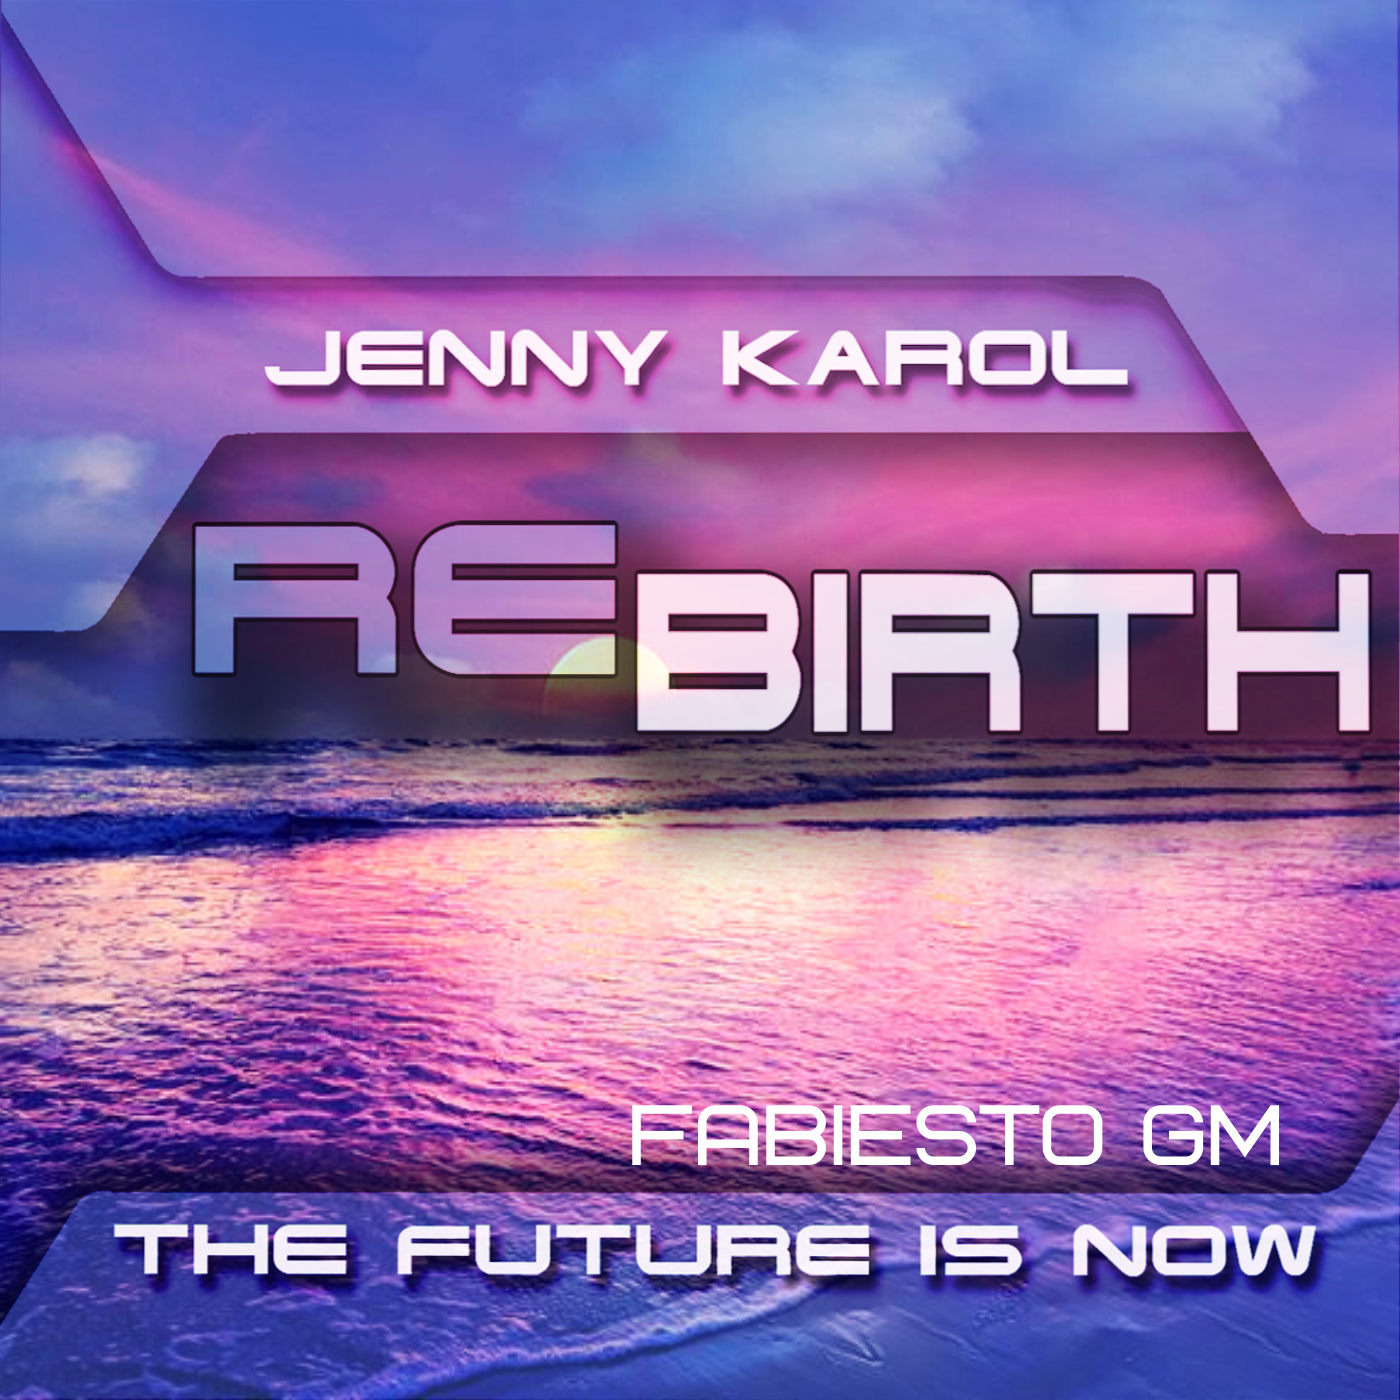 Jenny Karol — ReBirth. The Future is Now #136(Guest: Fabiesto)